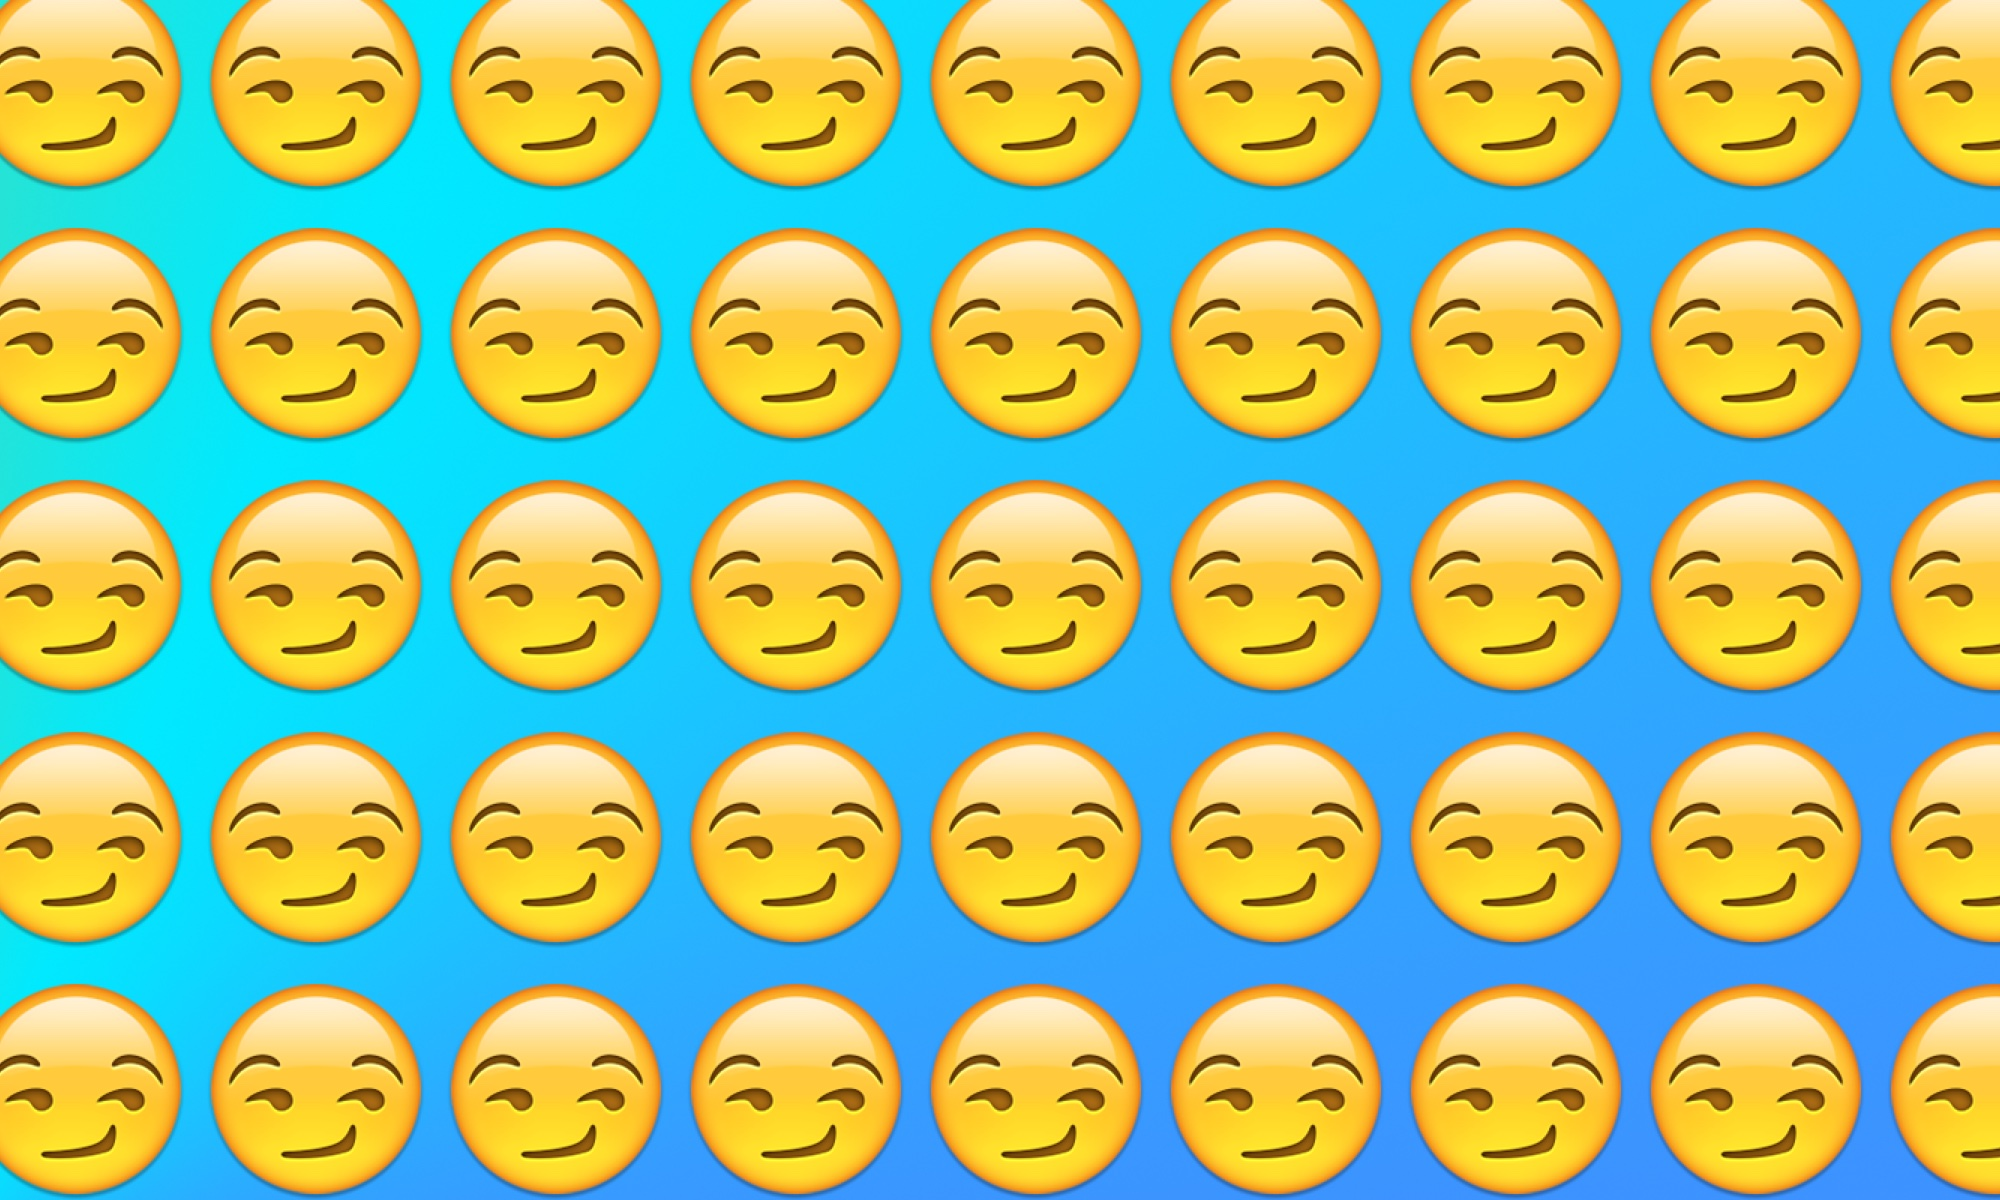 Emoji-Header-Smirking-Face-Emojipedia.jpg